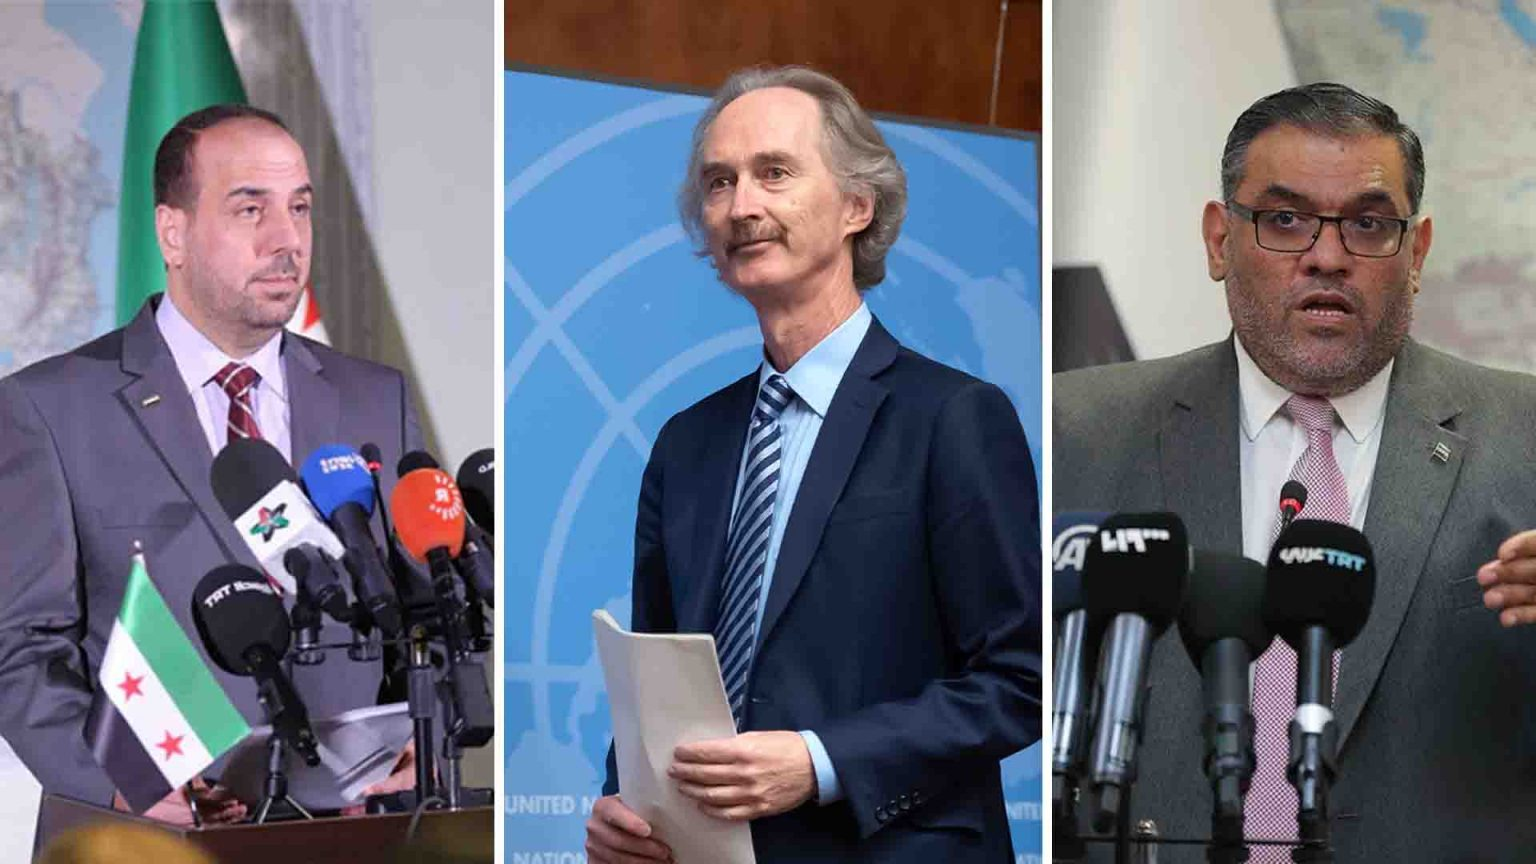 From left to right, Naser al-Hariri (Secretary-General of the Syrian National Coalition), Geir Pedersen (the UN Special Envoy for Syria), Anas al-Abdah (President of the Syrian Interim Government)